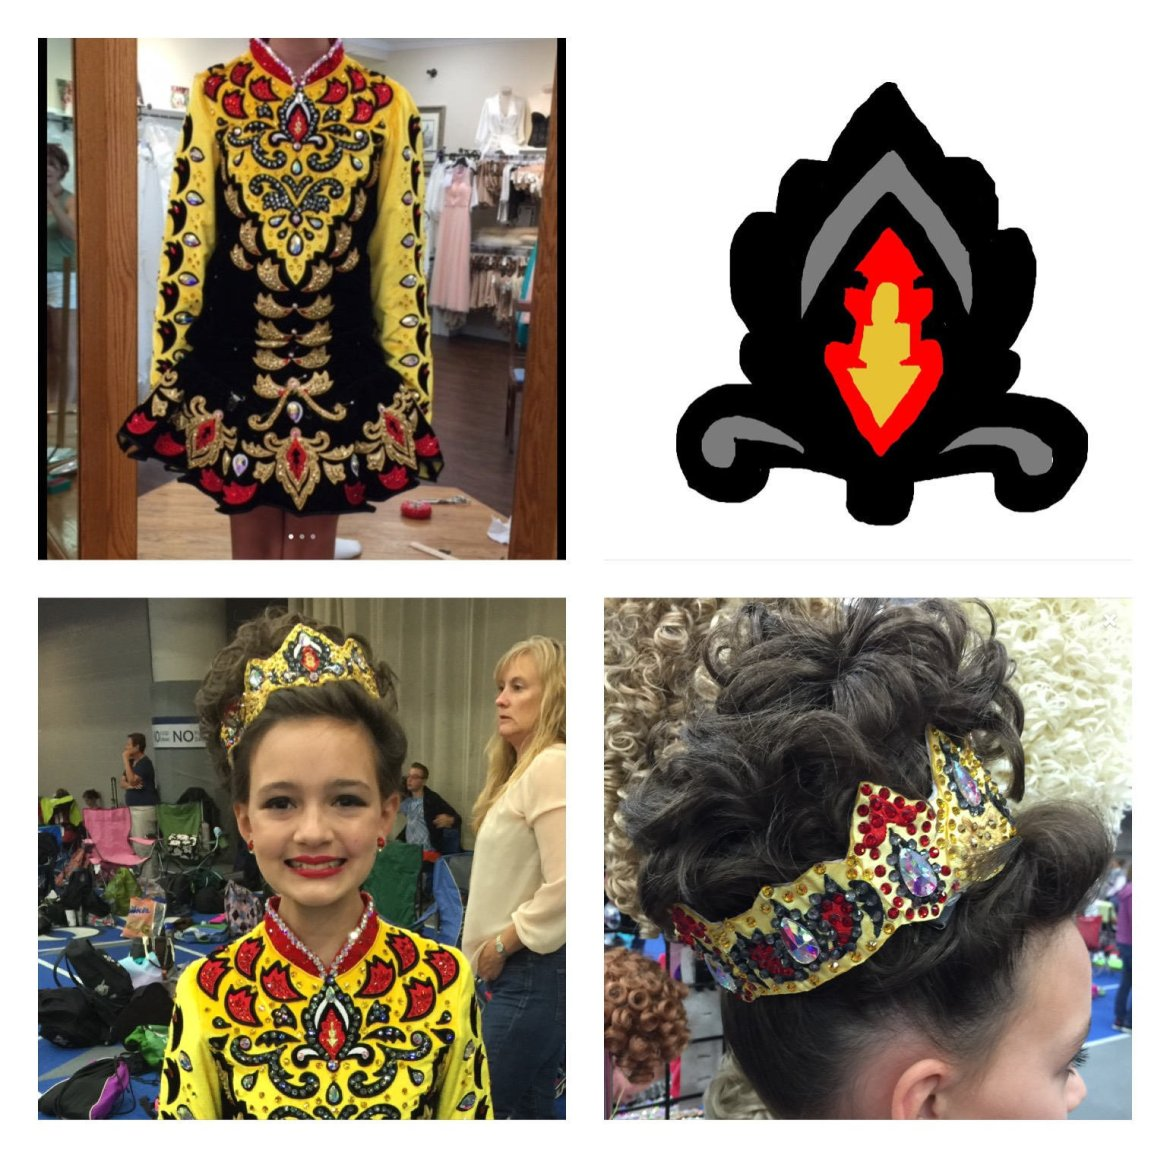 Custom designed tiara to match your solo costume. $20 deposit required for the design!